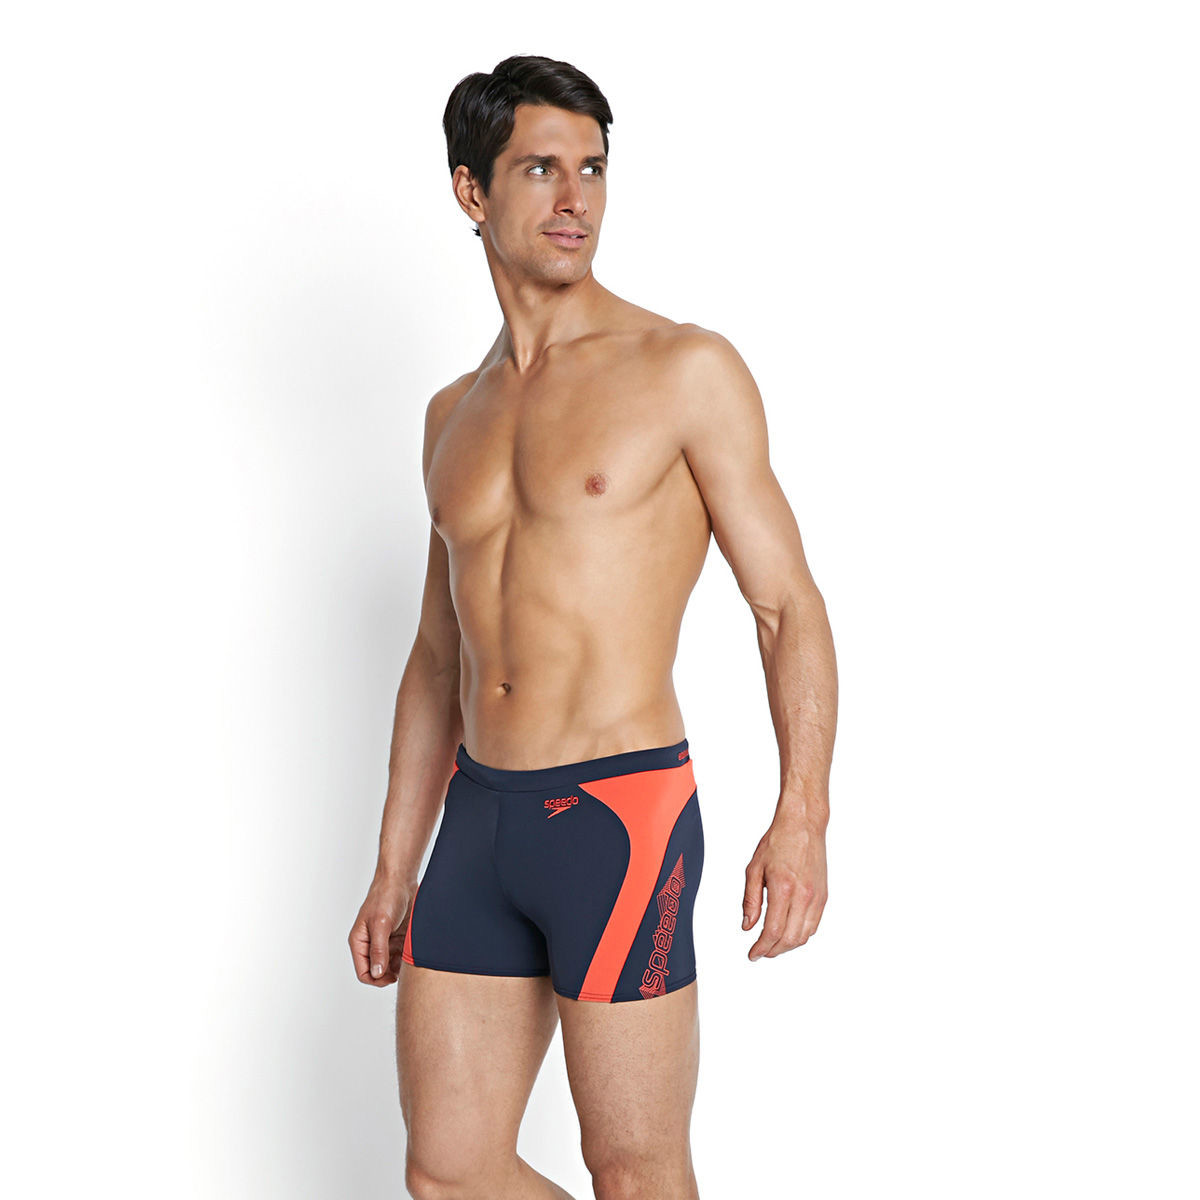 Speedo - Quần Bơi Nam Endurance+ Monogram Graphic Splice Aquashort Navy/Red